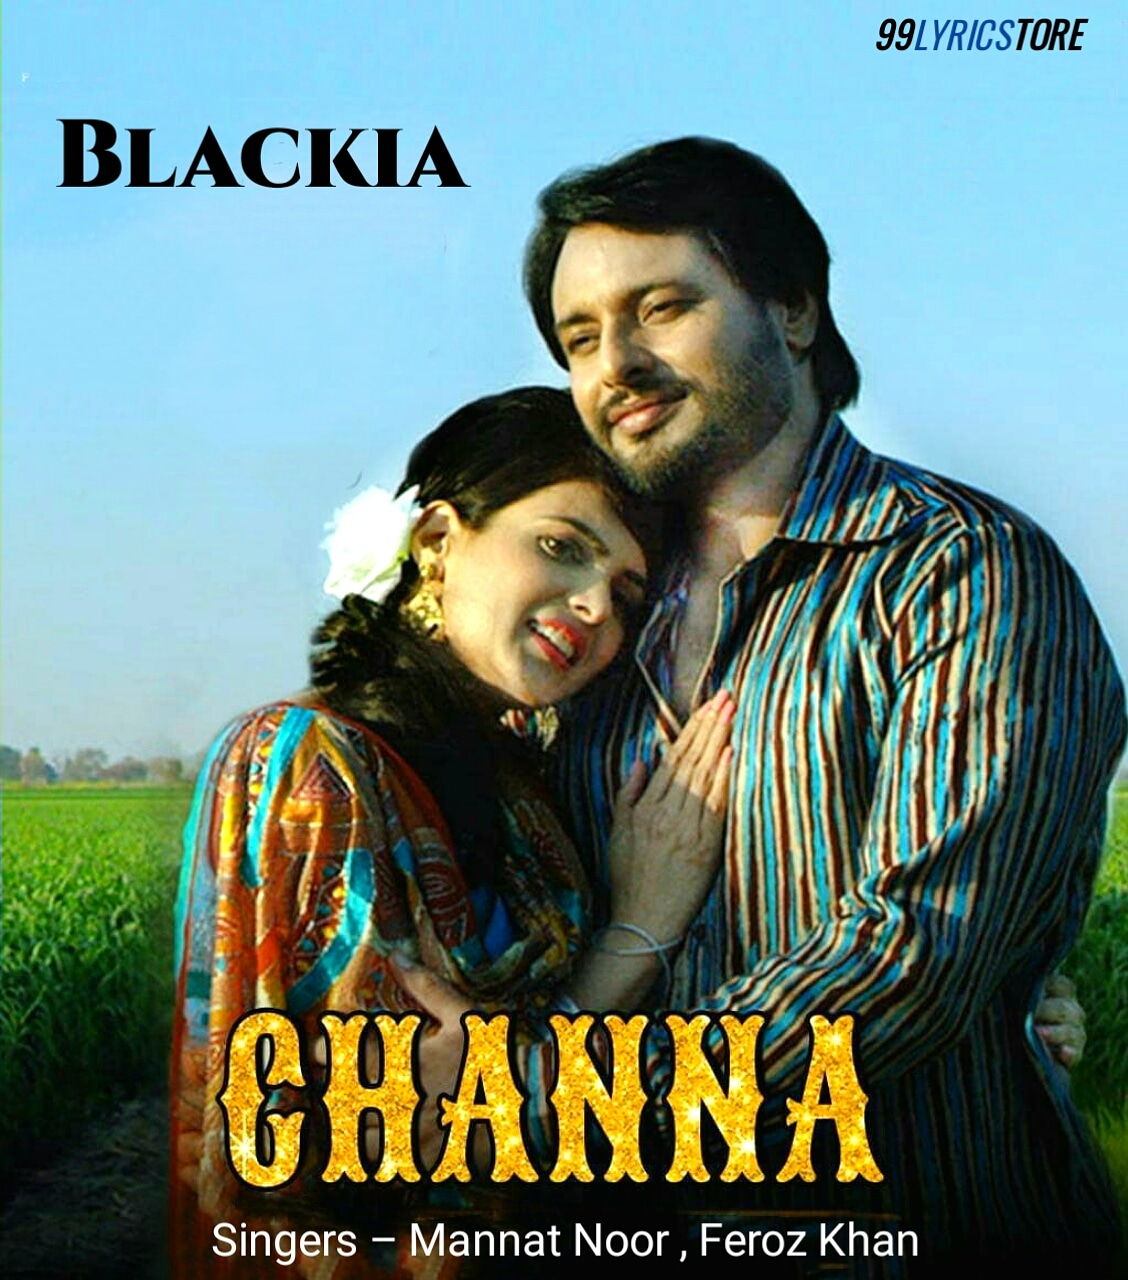 Channa Punjabi Song Lyrics Sung by Mannat Noor from movie Blackia